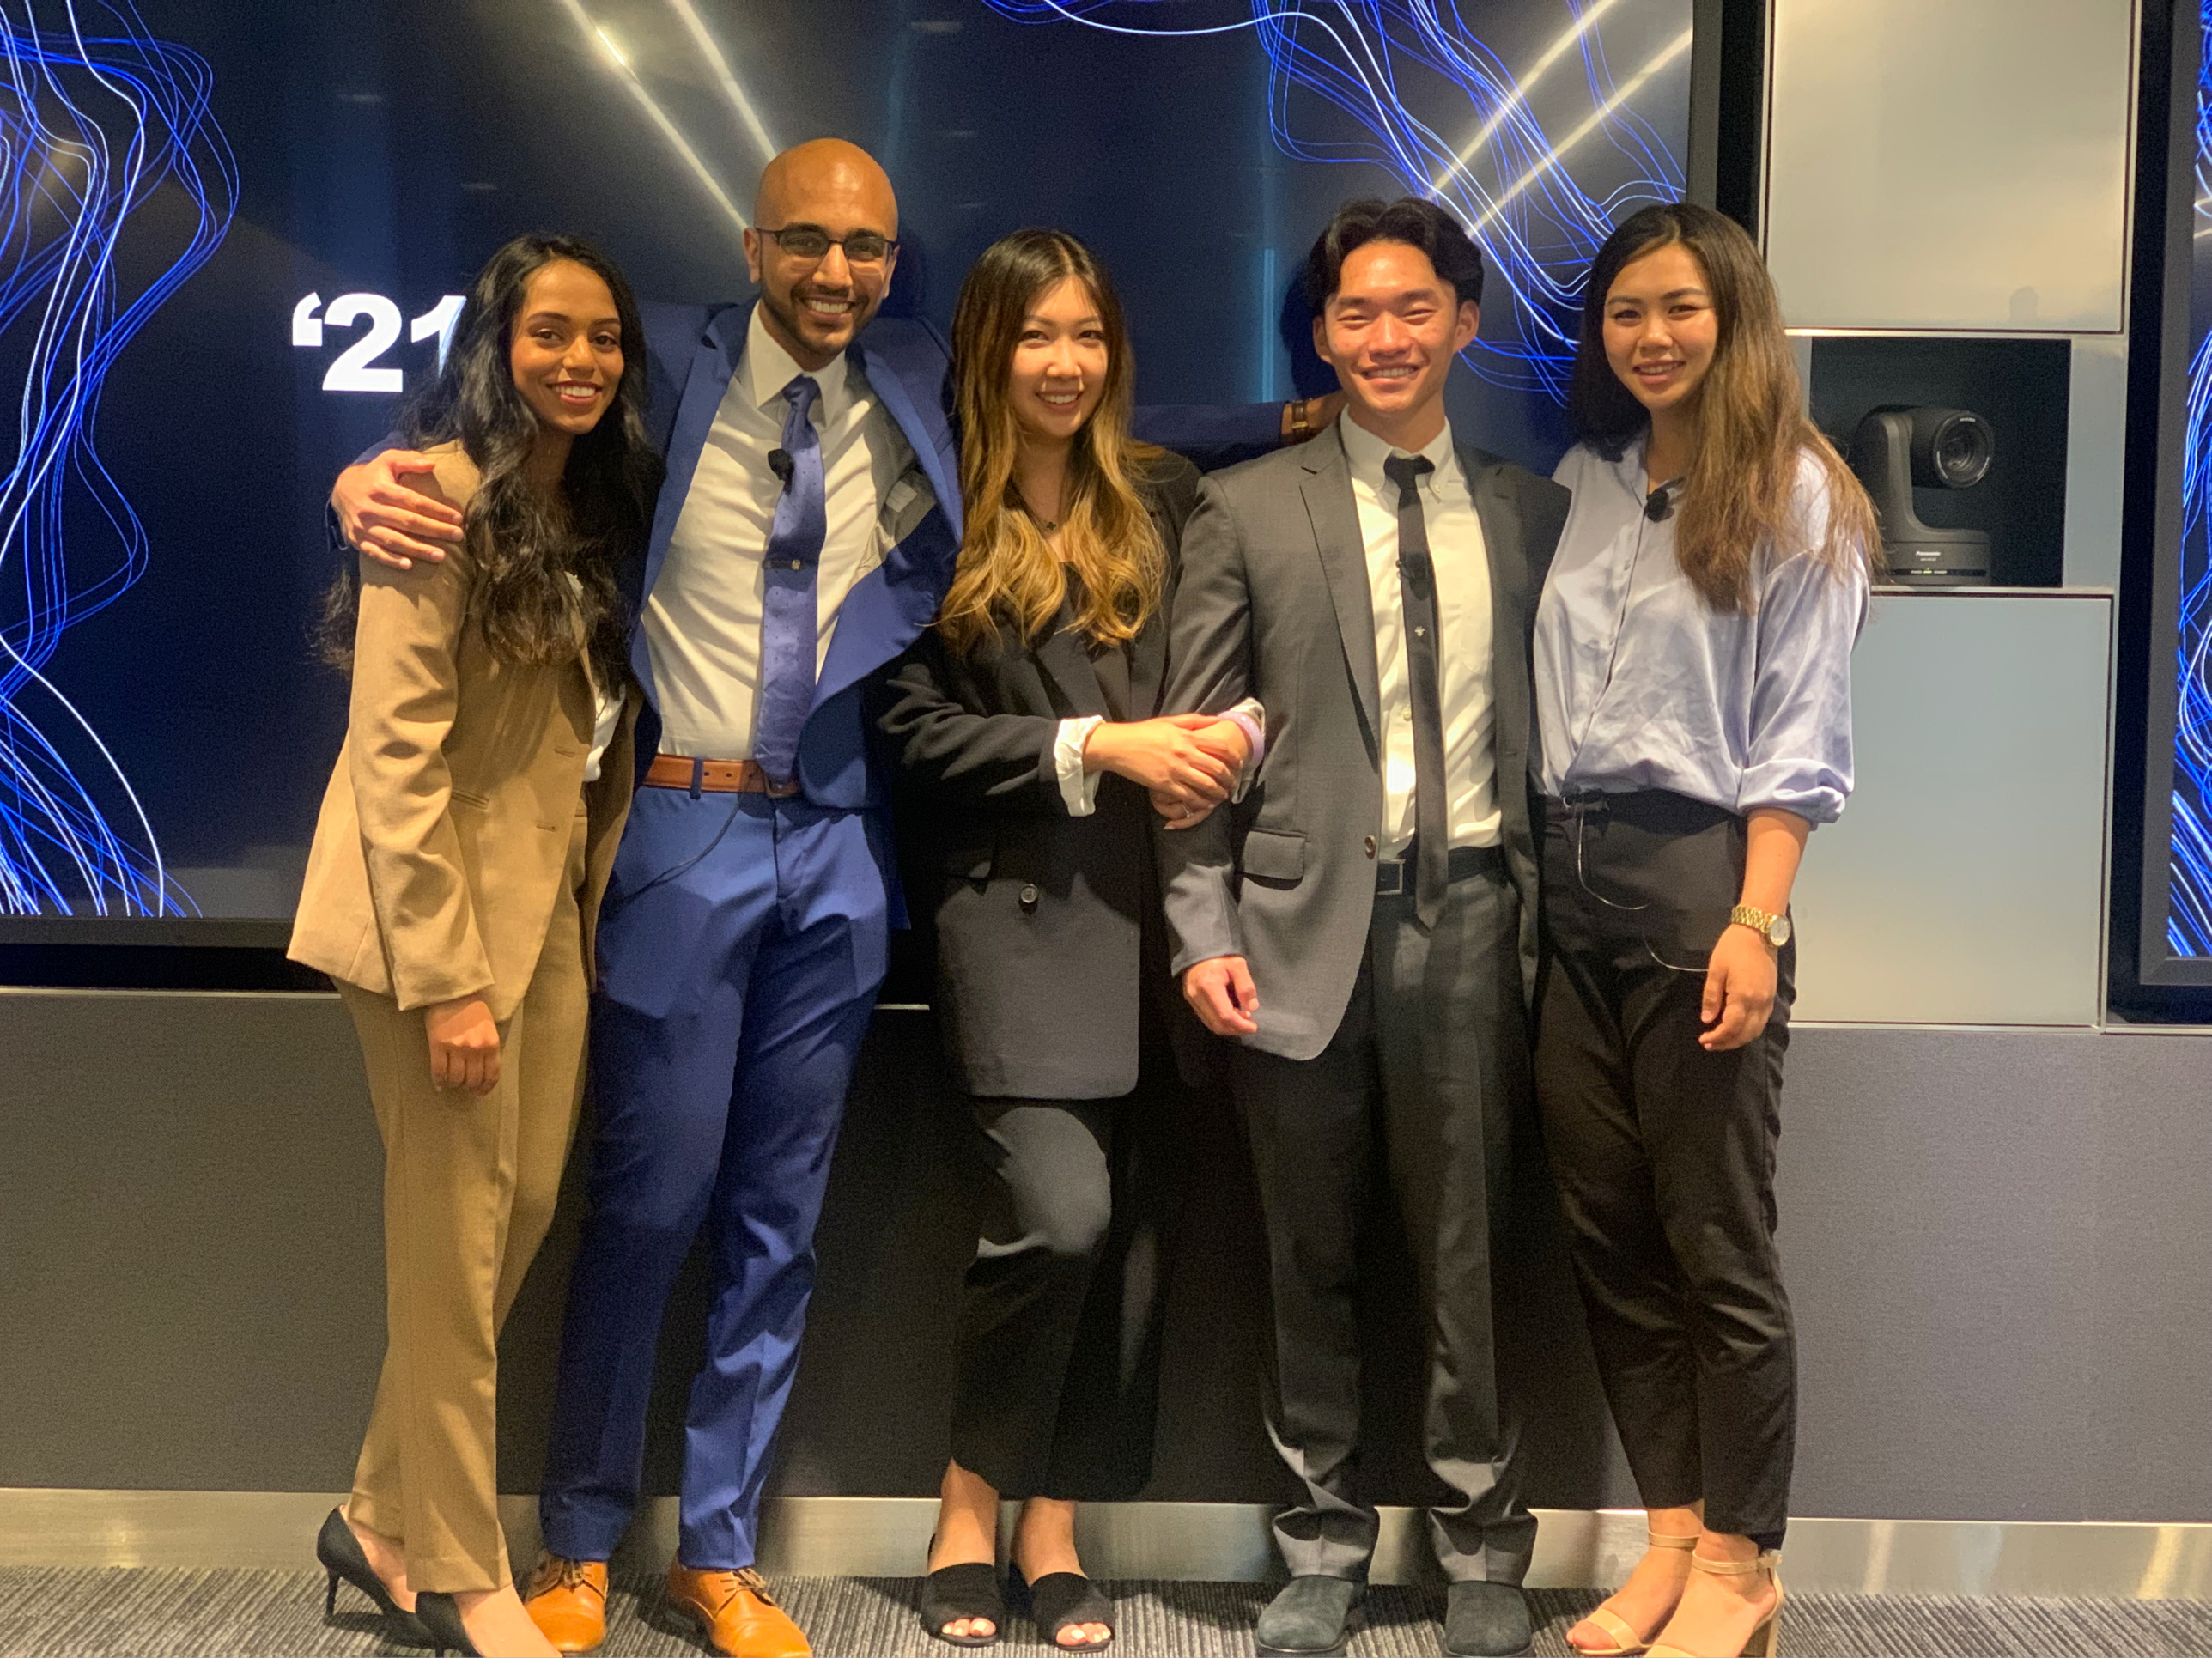 group photo of the 5 students on Team Bloomberg after their final presentation